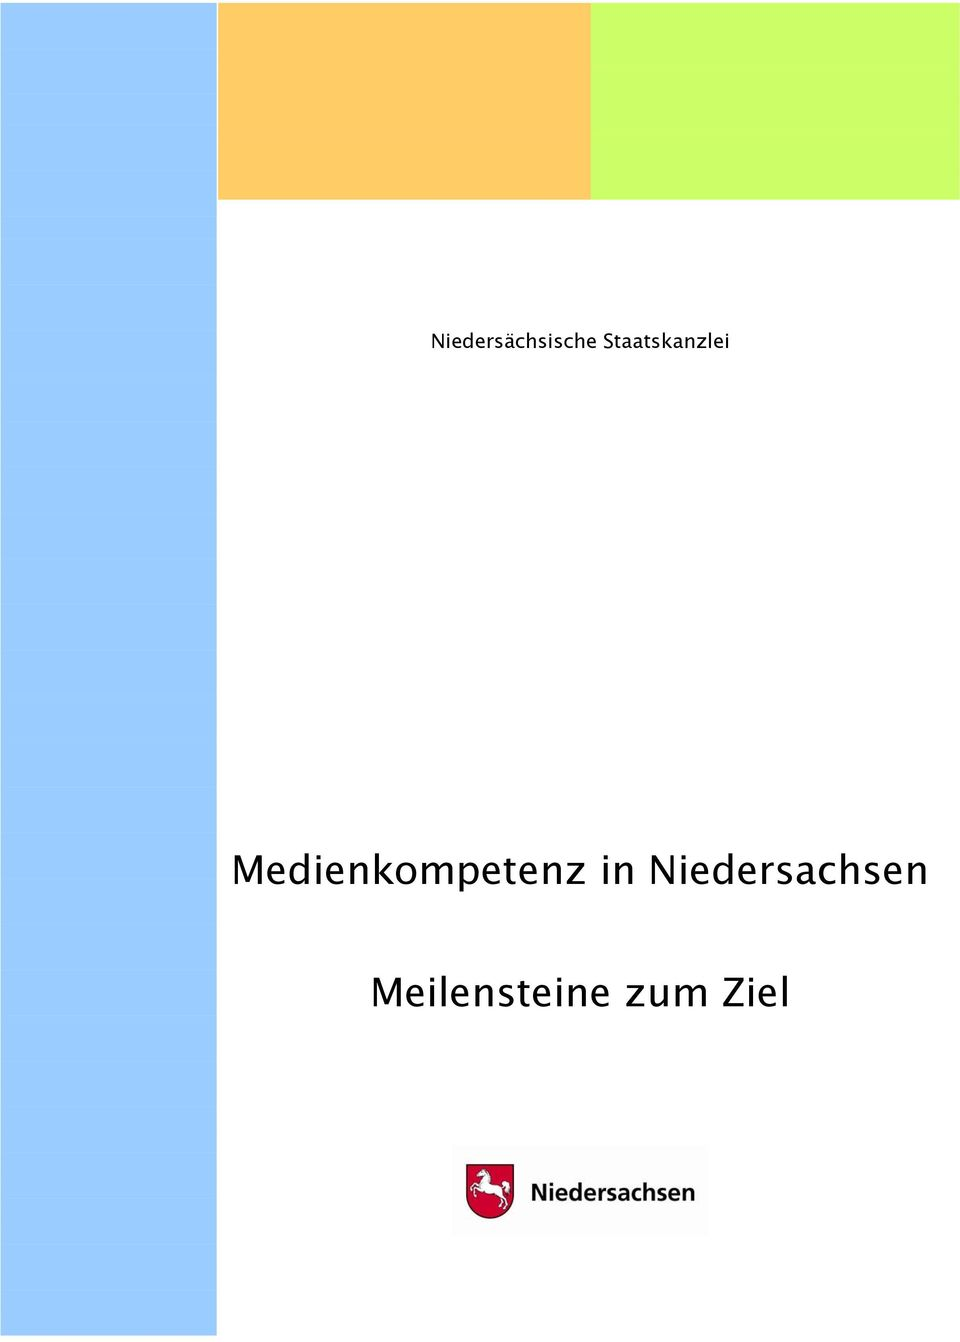 Medienkompetenz in